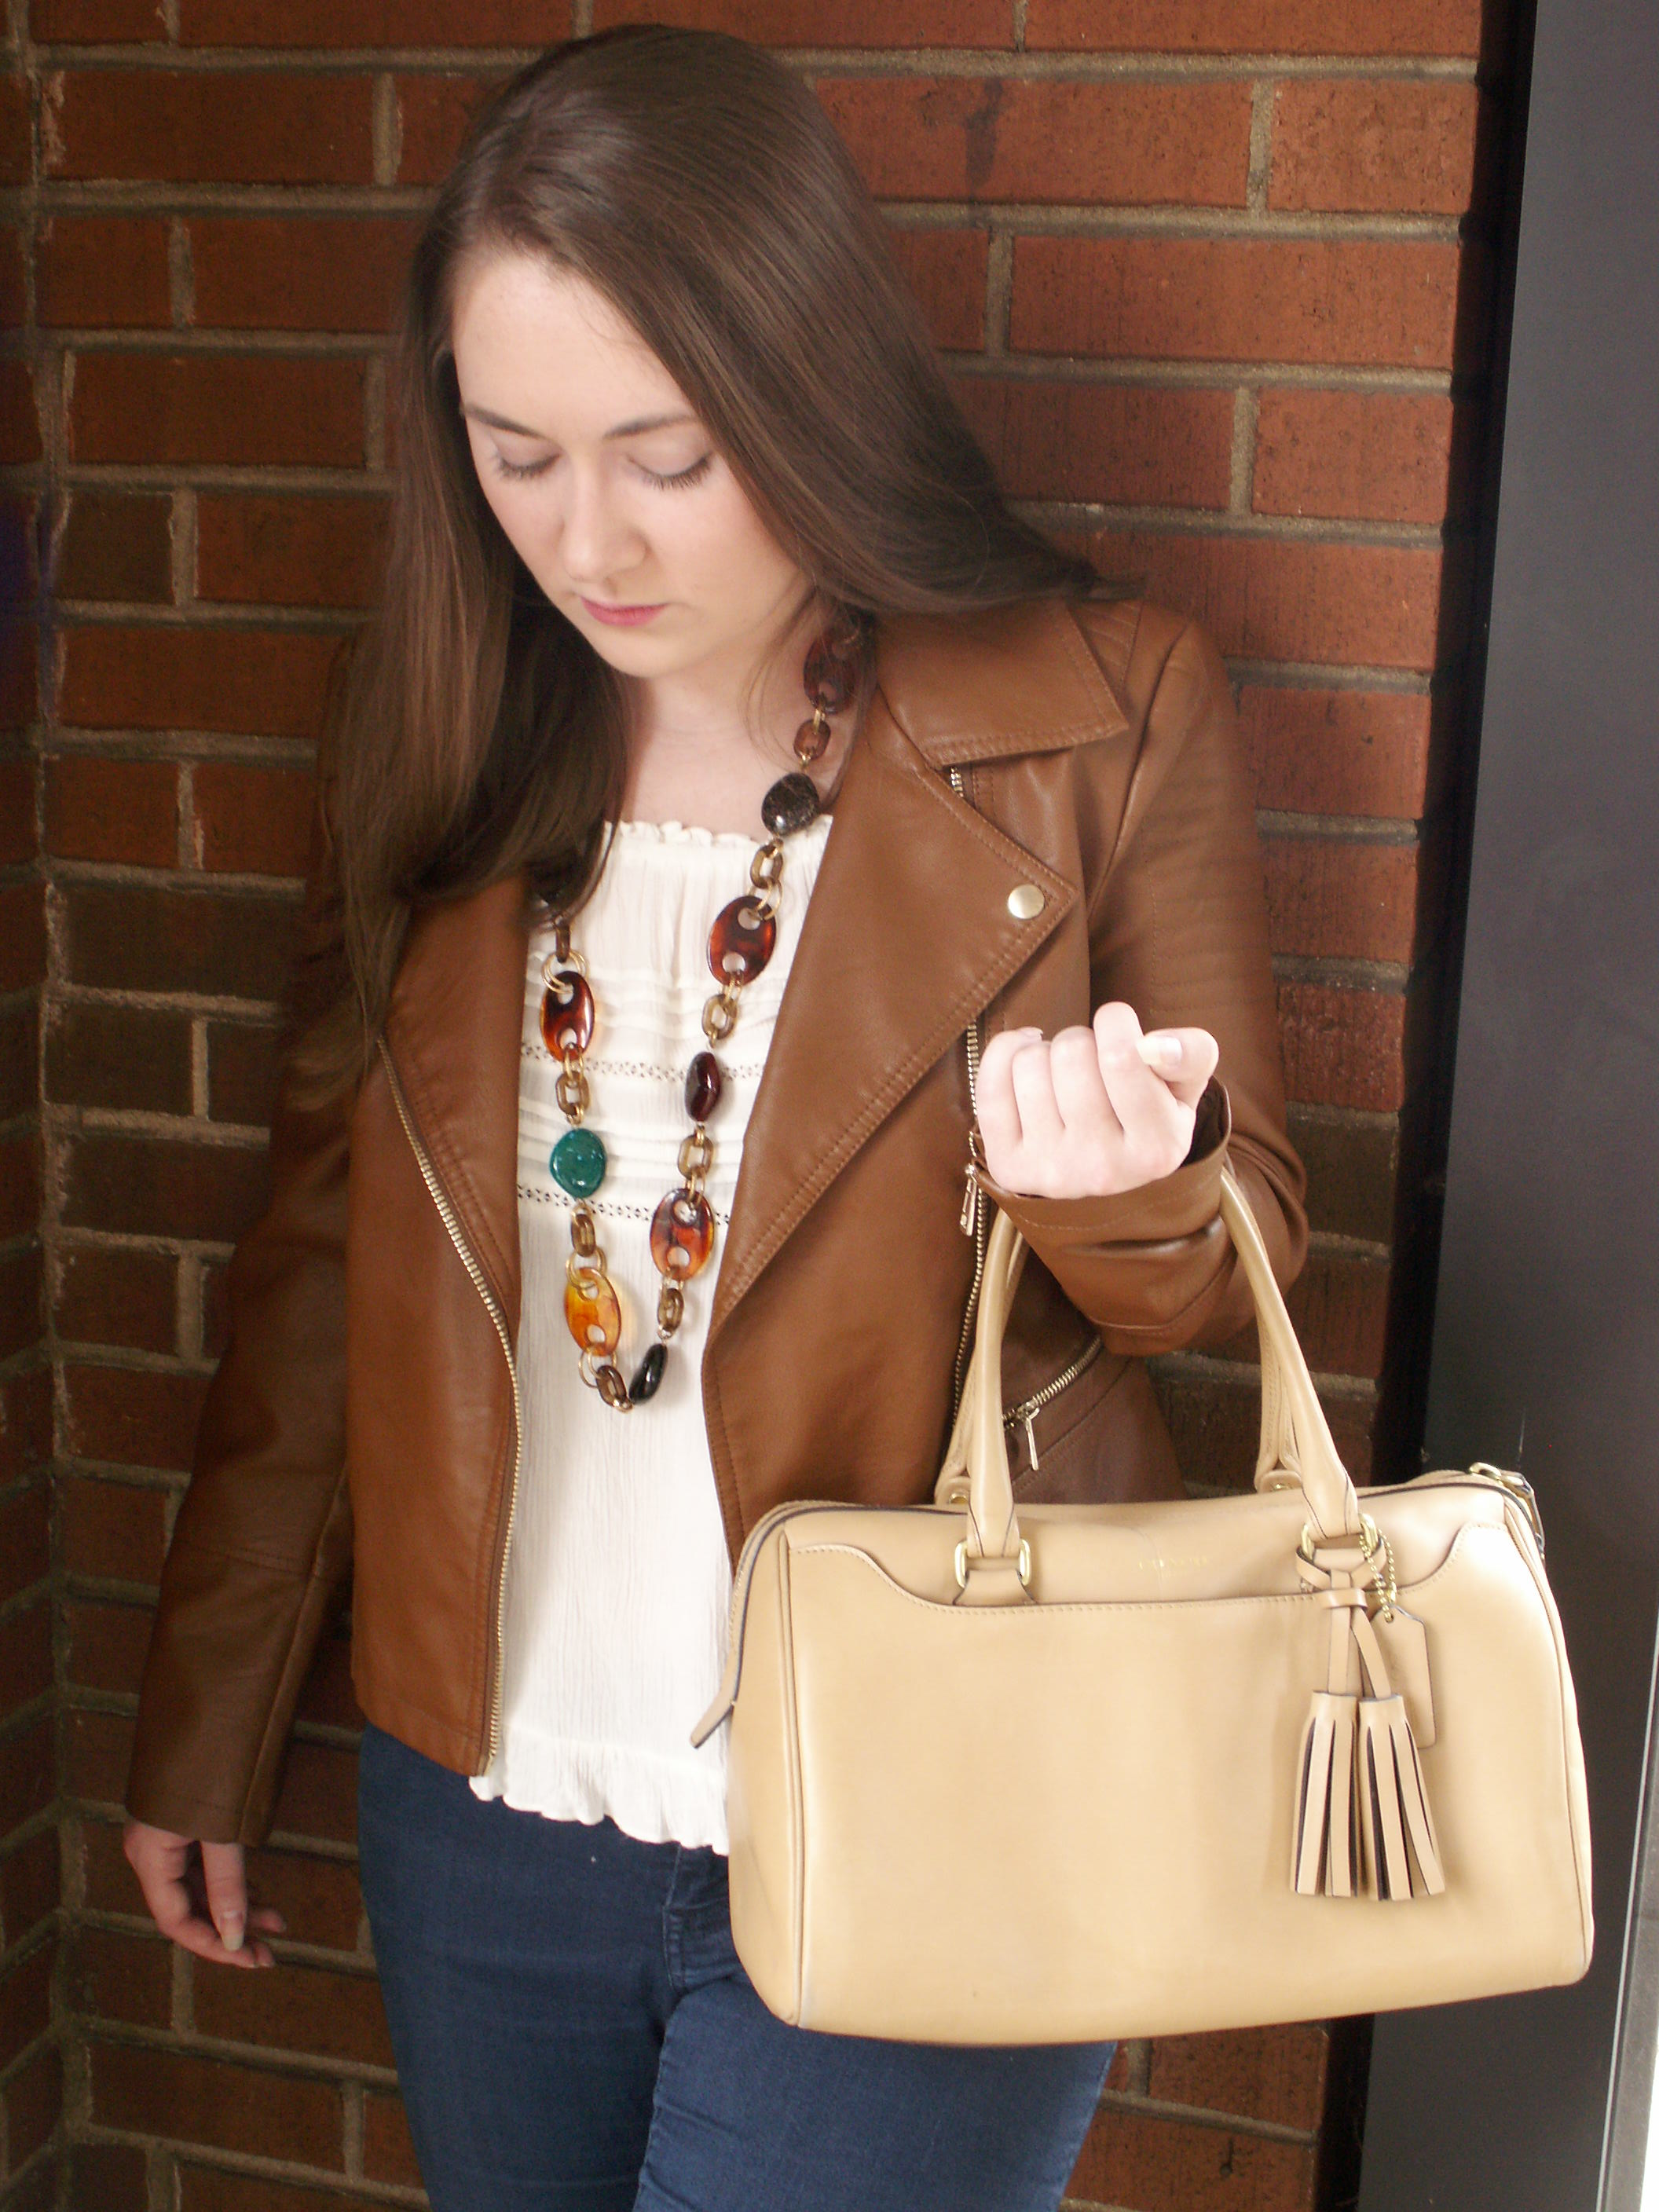 Model is wearing a cognac leather jacket with a white blouse, blue jeans, and leather accessories.